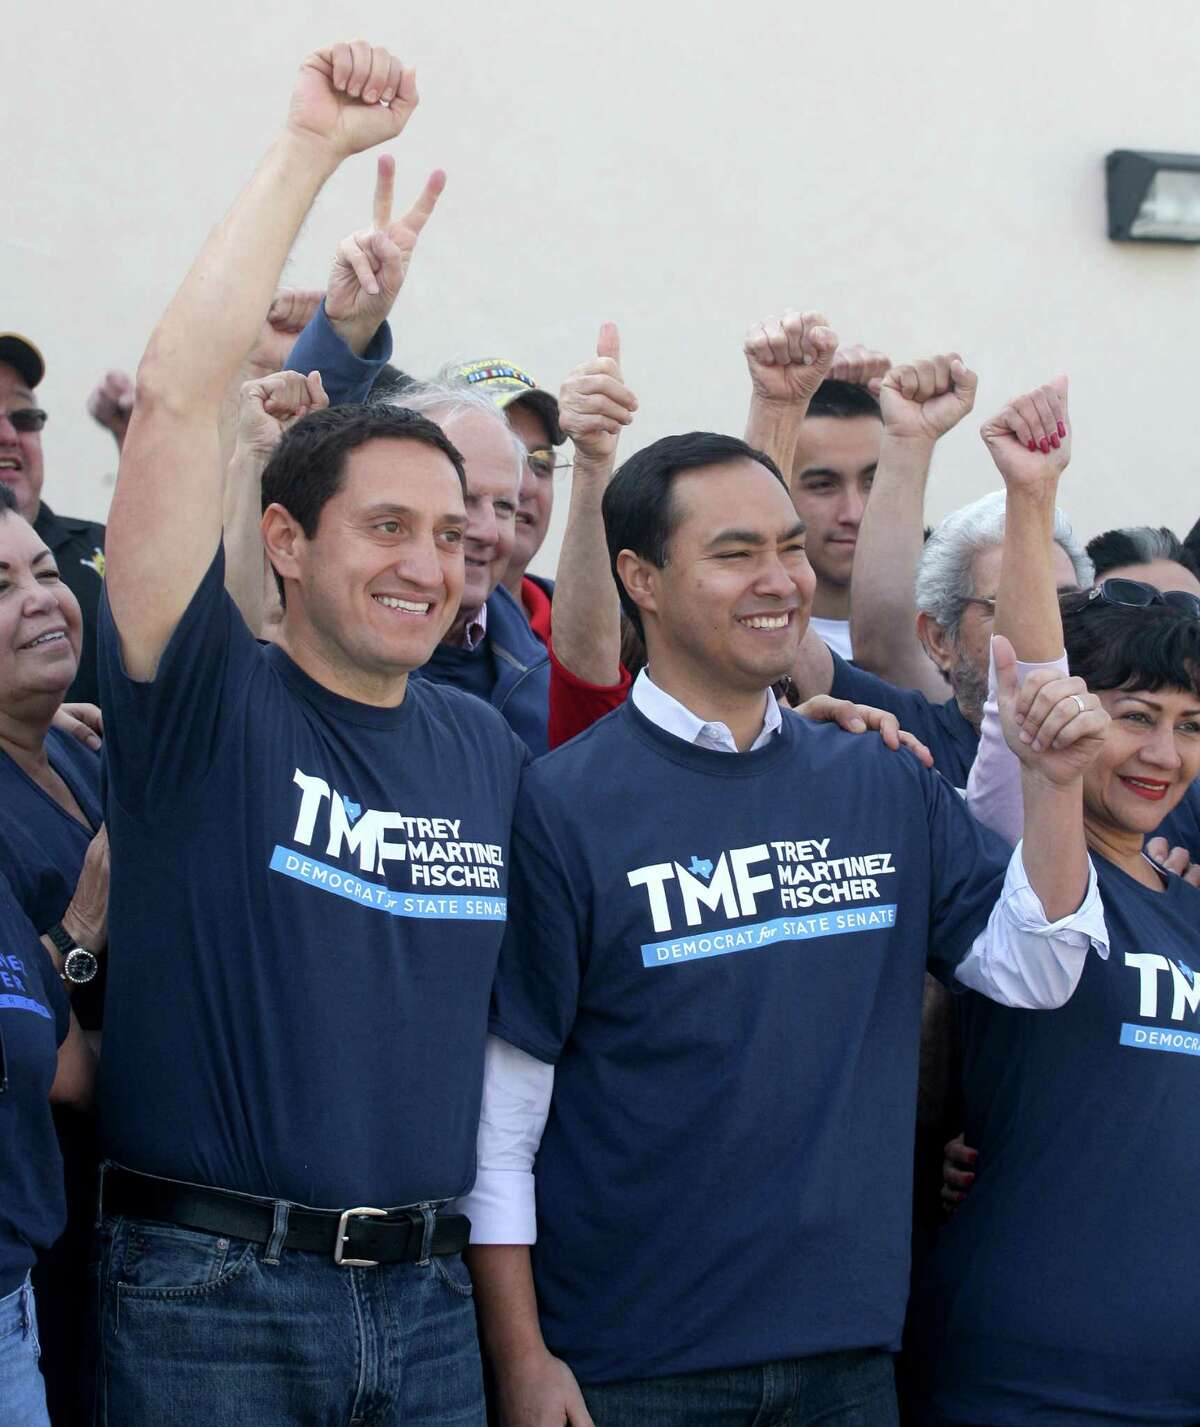 In campaign gear, Trey Martinez Fischer rallies supporters, including U.S. Rep. Joaquin Castro, at the law office of state Rep. Roland Gutierrez.